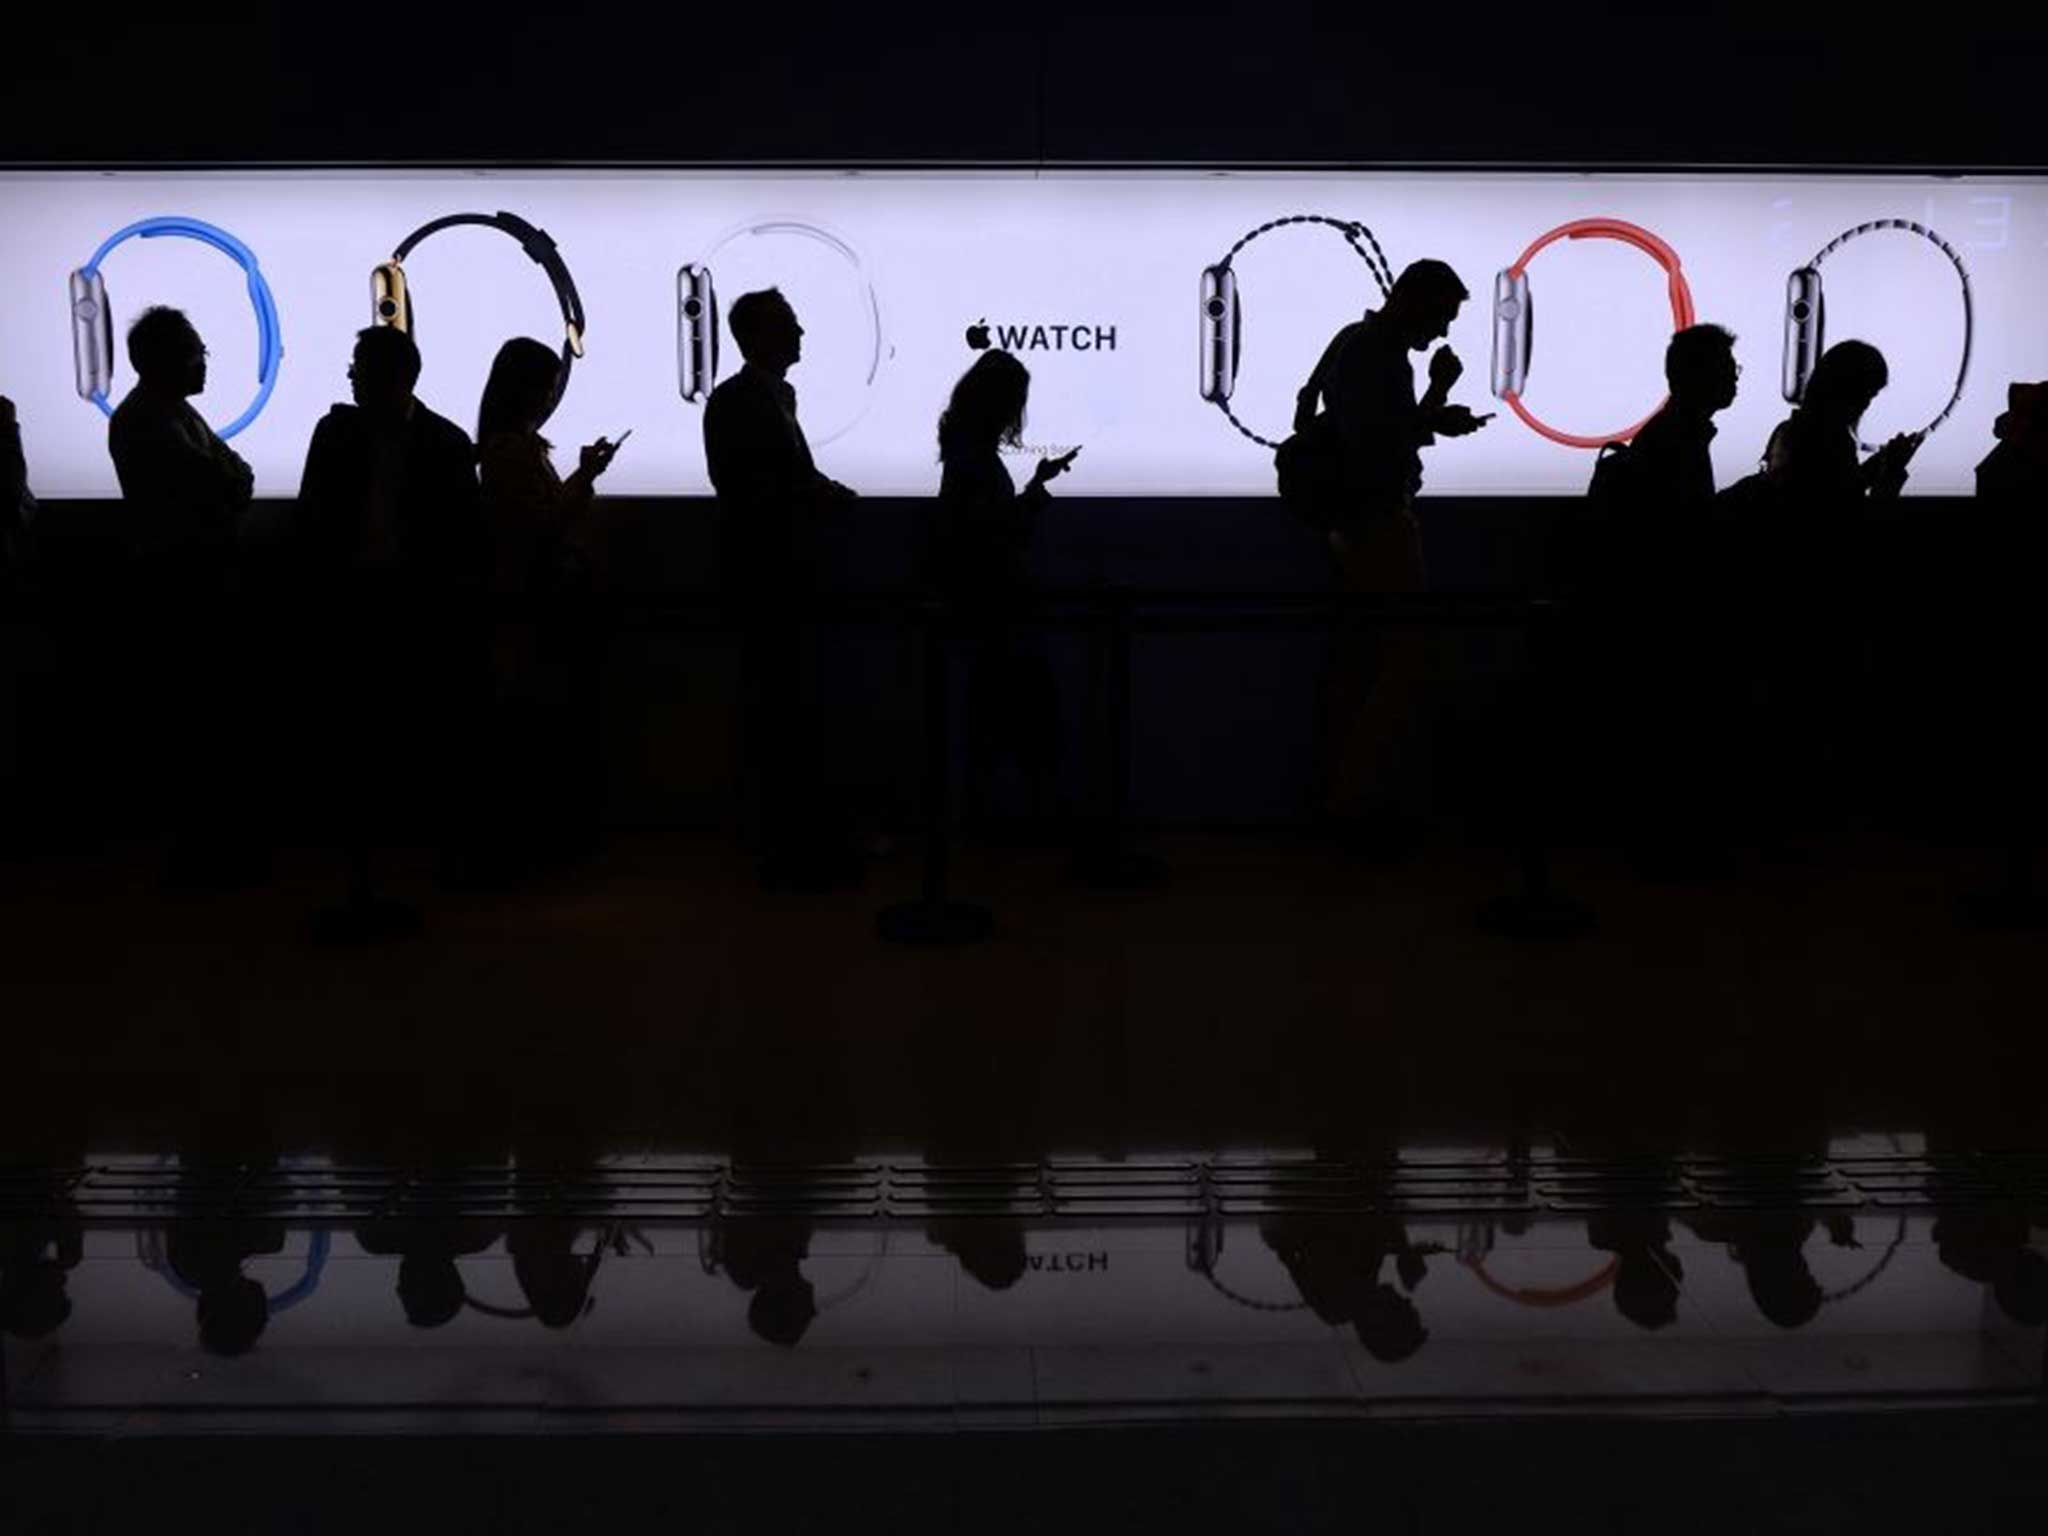 Apple Watch or iWatch: the one letter that shows Apple hasn't quite convinced everyone